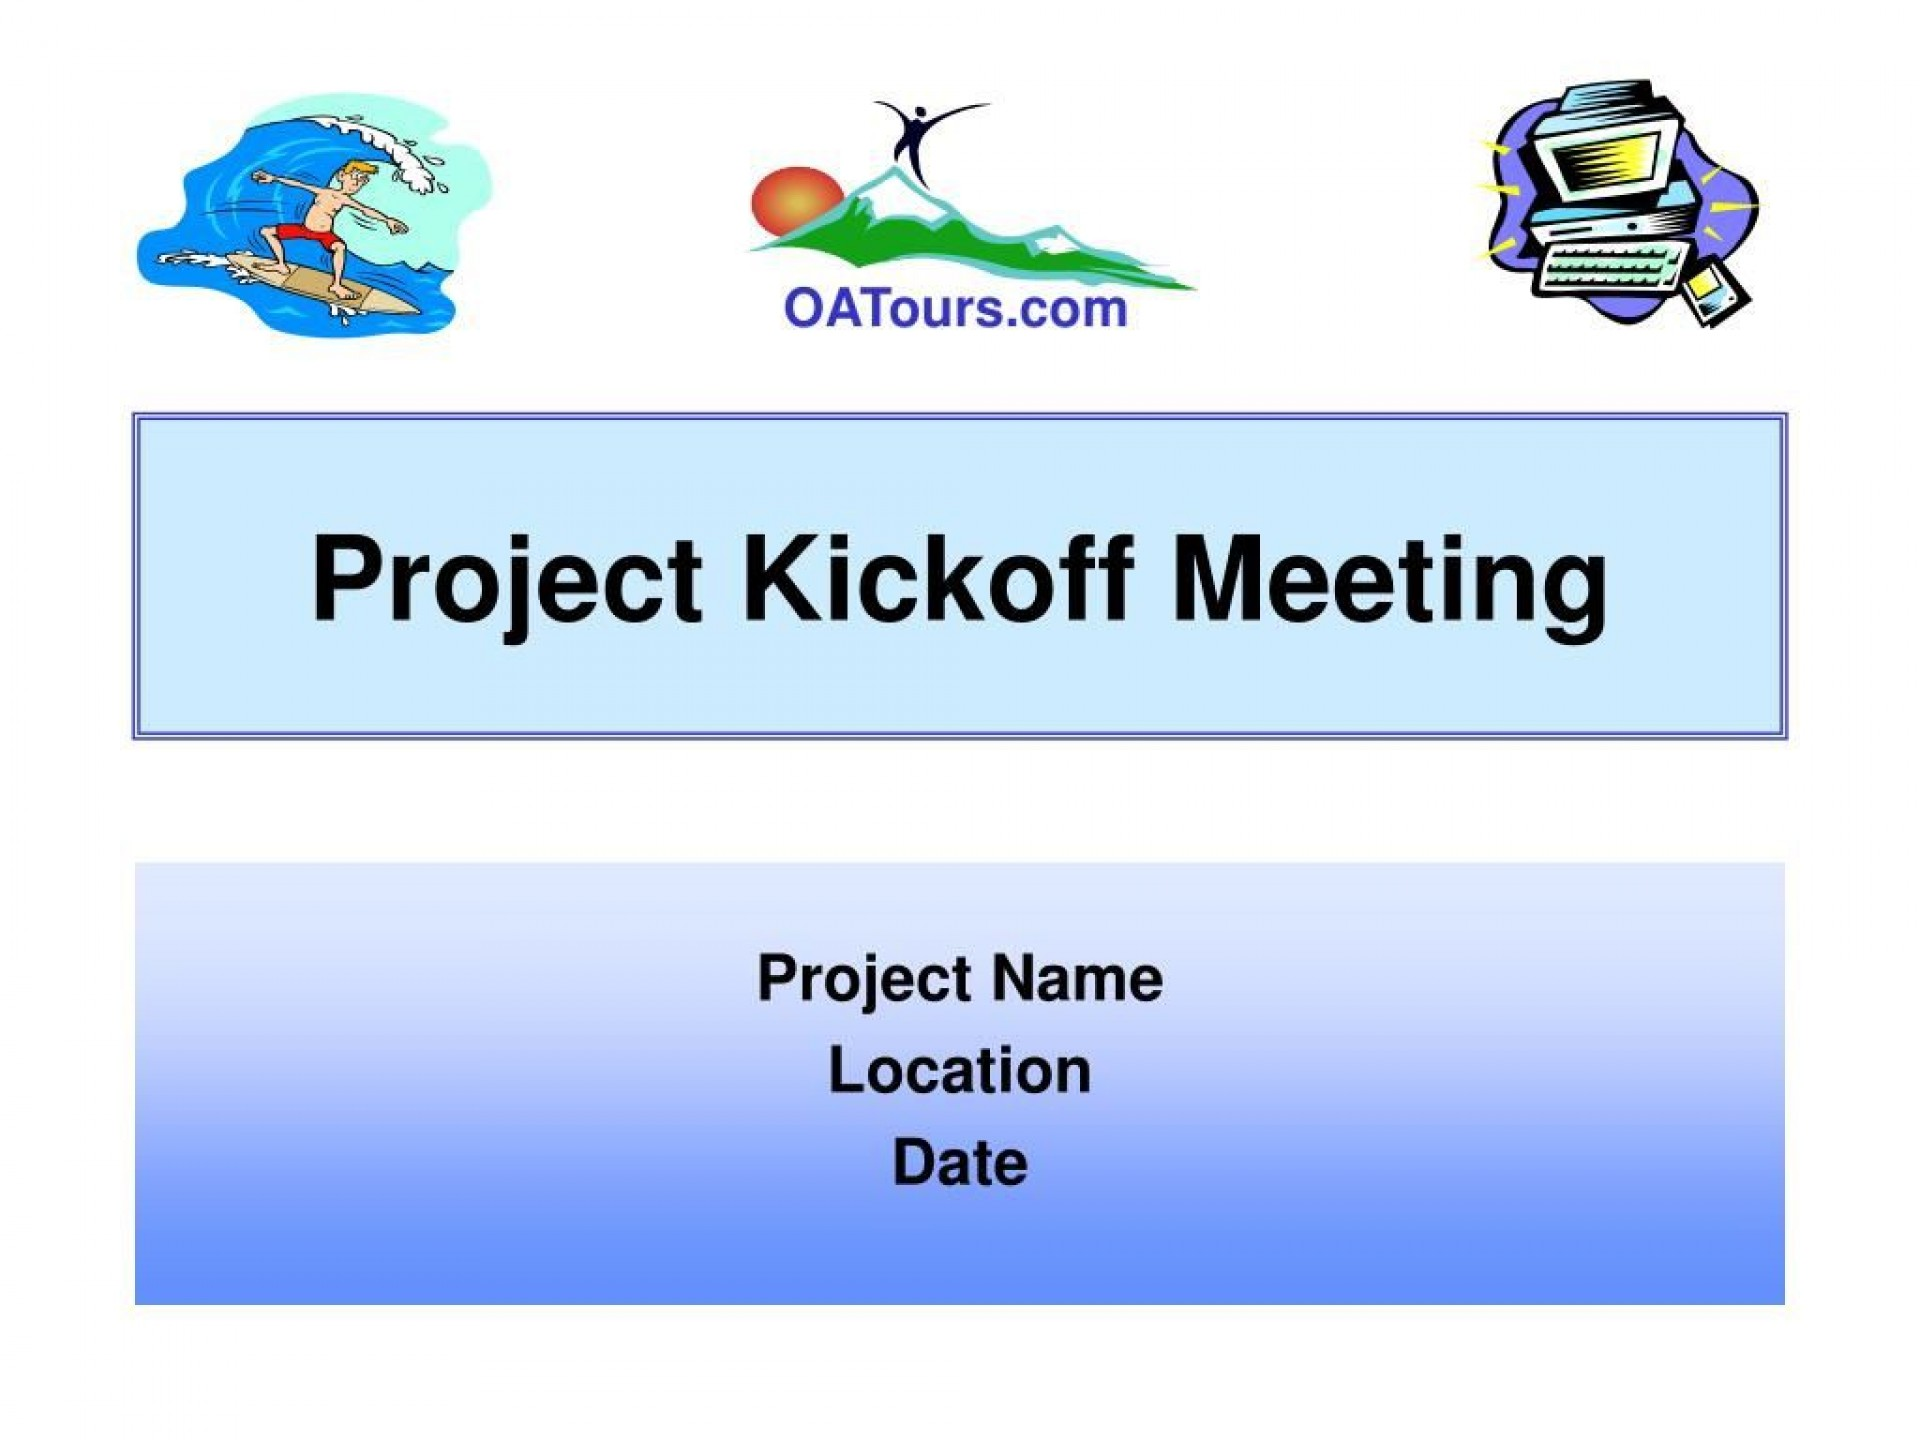 009 Imposing Project Kickoff Meeting Powerpoint Template Ppt Example  Kick Off Presentation1920